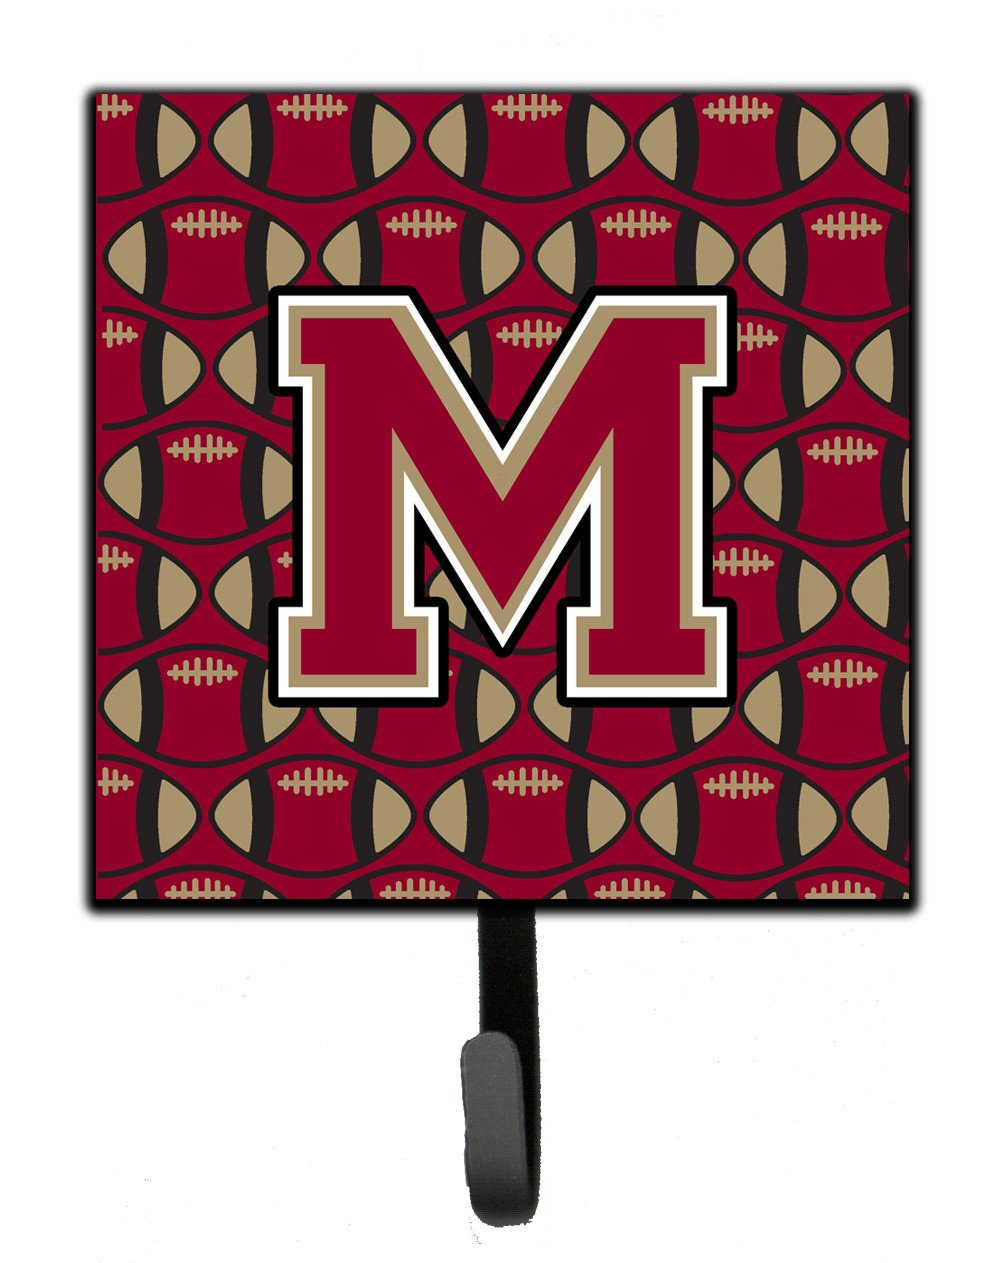 Letter M Football Garnet and Gold Leash or Key Holder CJ1078-MSH4 by Caroline's Treasures